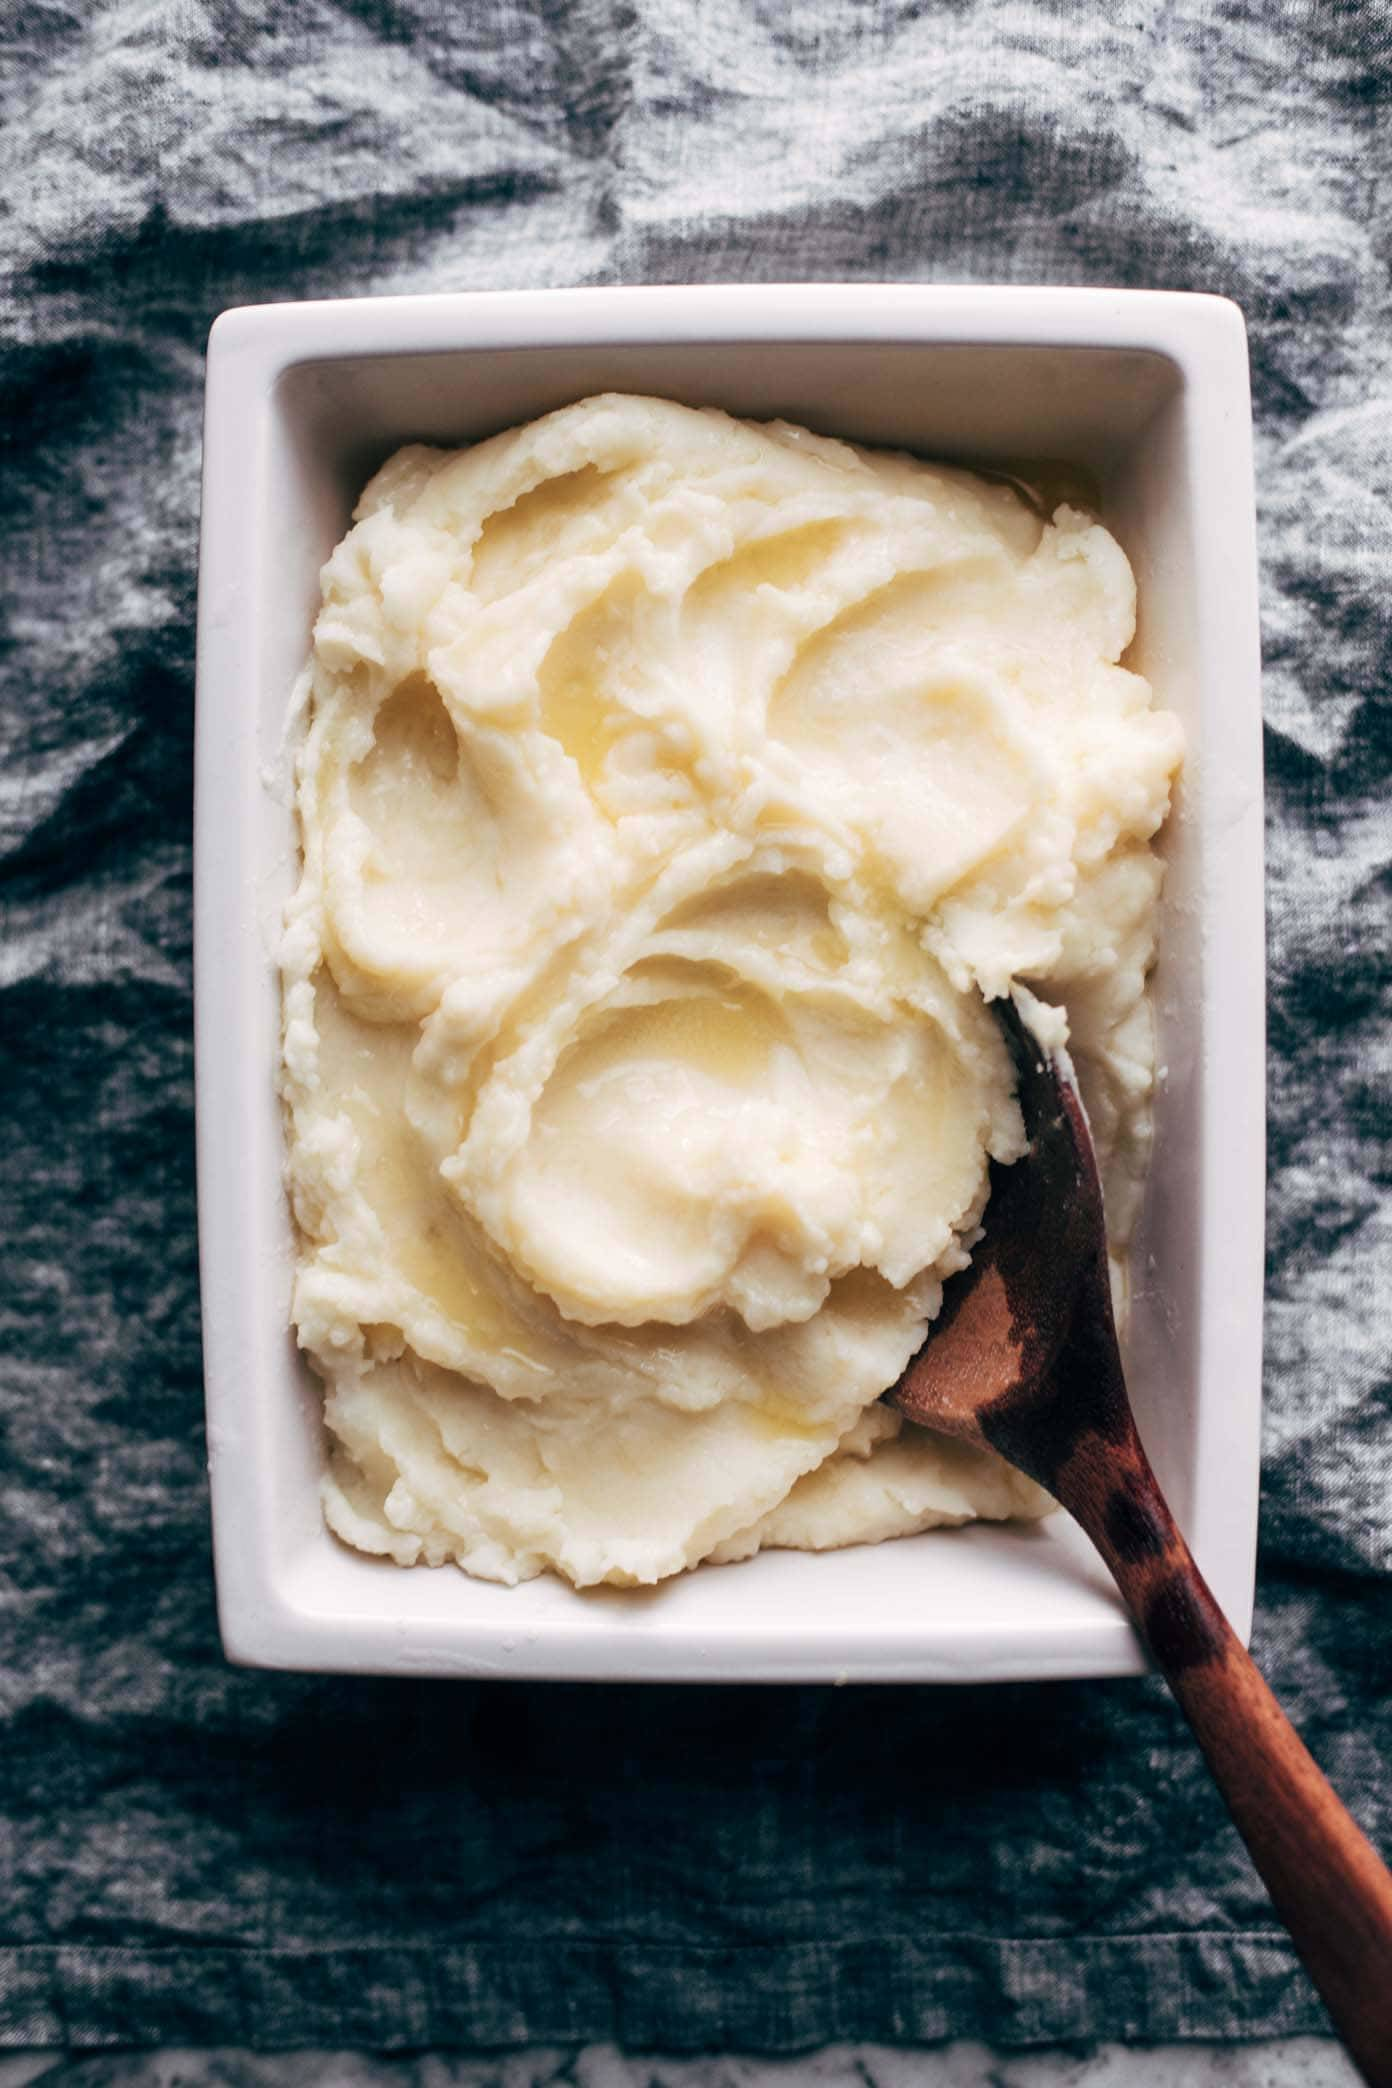 Instant Pot Mashed Potatoes in a white dish with a wooden spoon